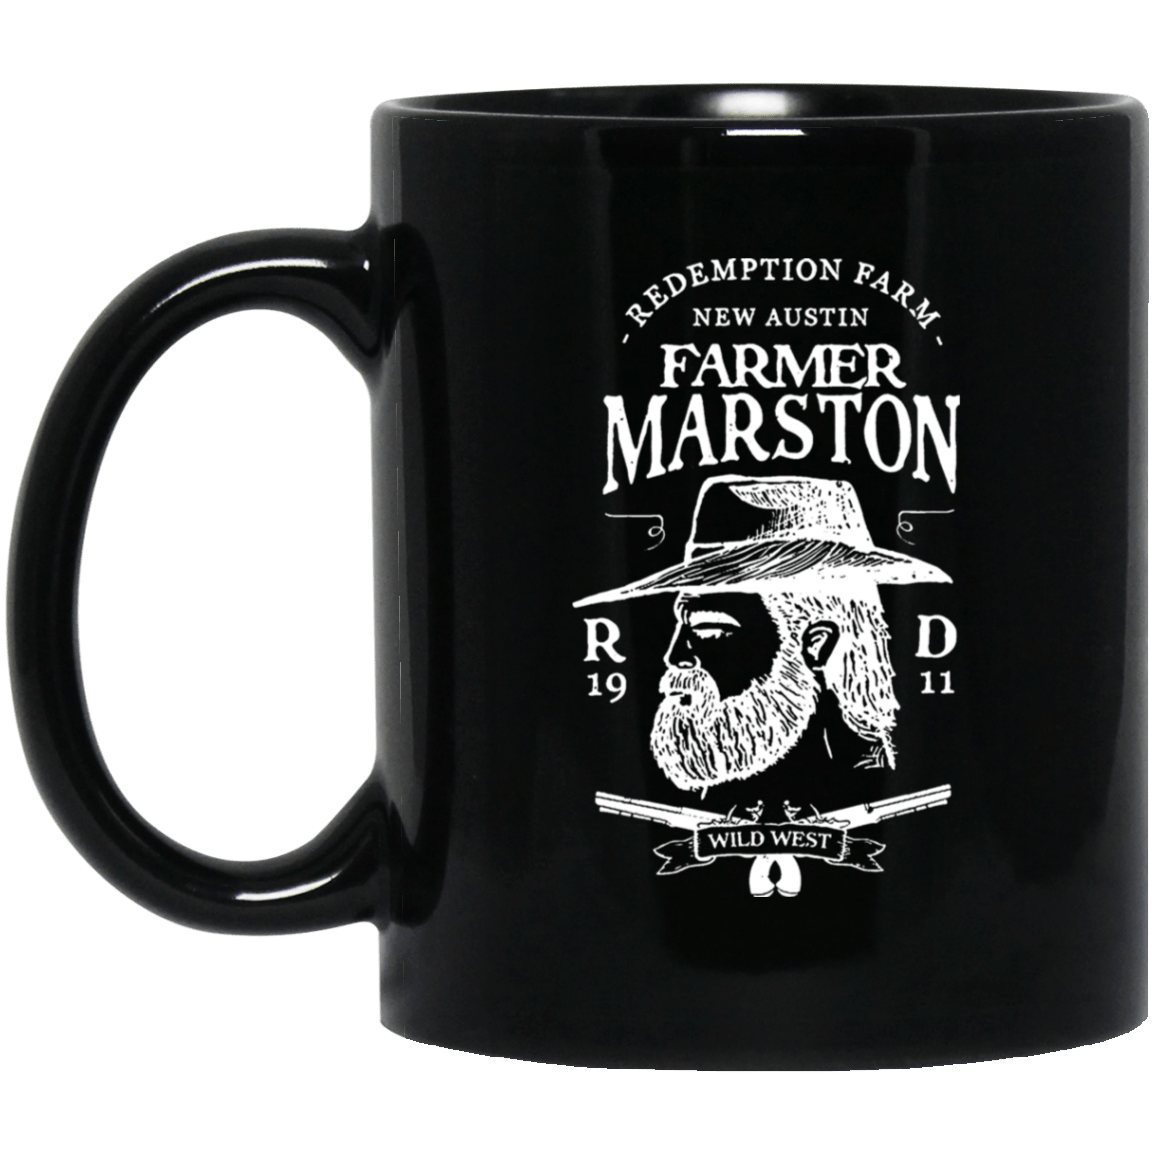 Farmer Marston Redemption Farm New Austin 1911 Black Mug 1065-10181-92839365-49307 - Tee Ript